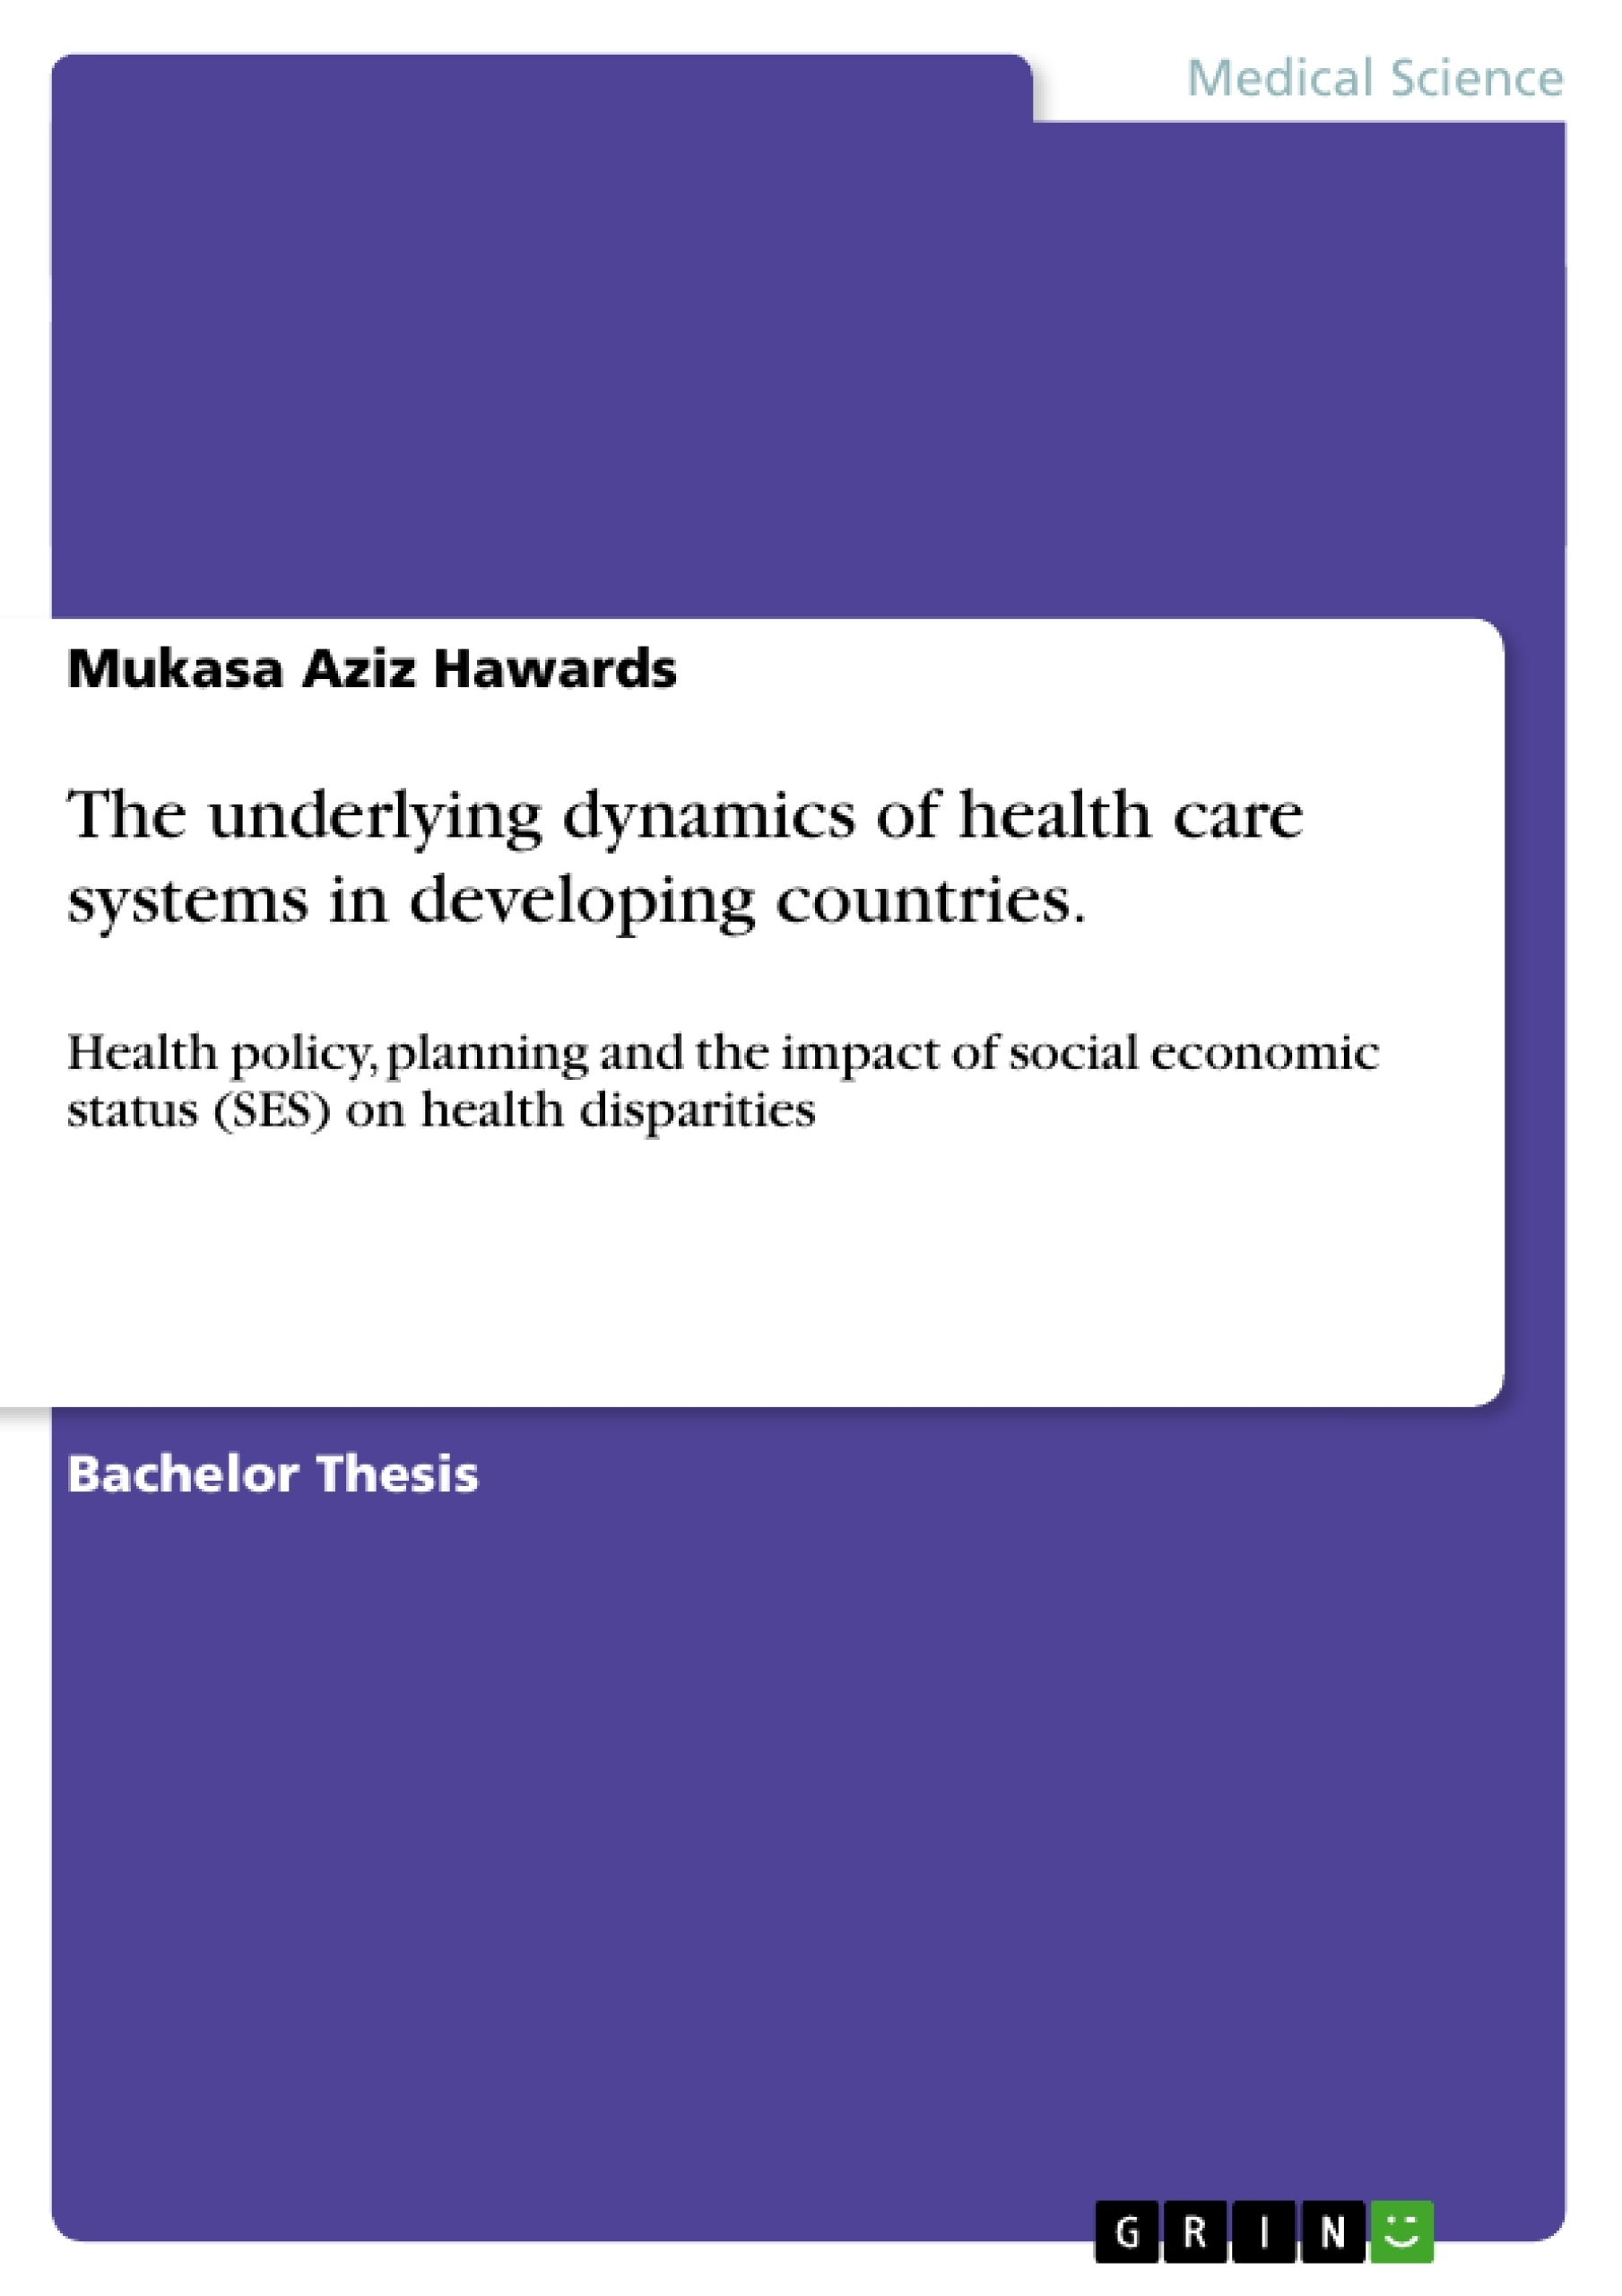 Title: The underlying dynamics of health care systems in developing countries.